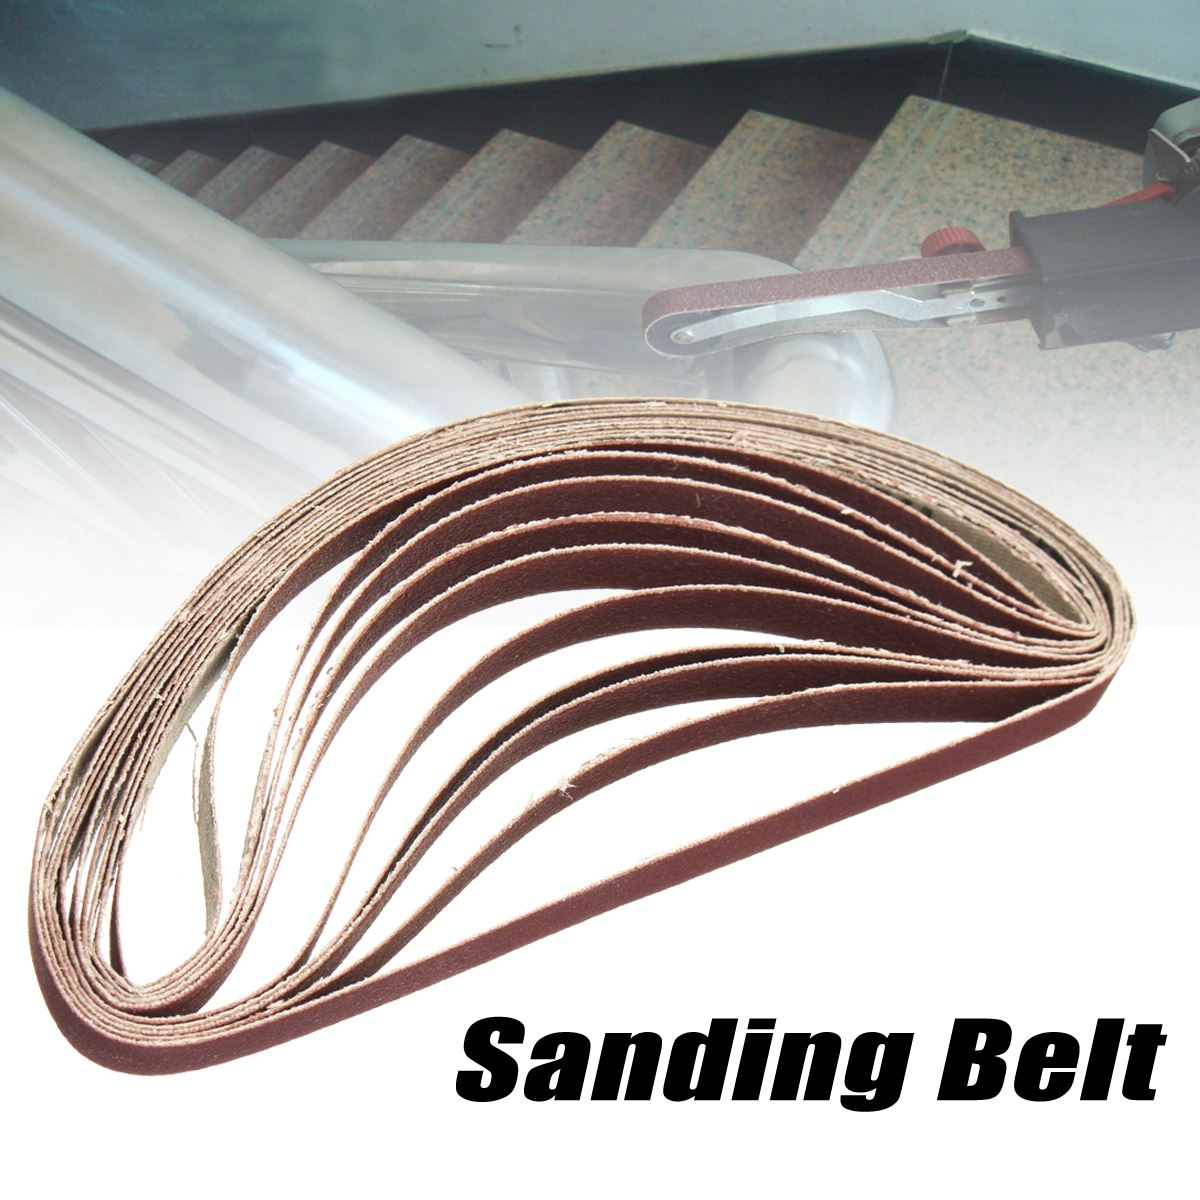 10Pcs/set 10x330mm Grinding Belts Sanding Belt Grit 60 120 240 400 For Flush Belt Machines Polishing Grind Machine Sander Tools